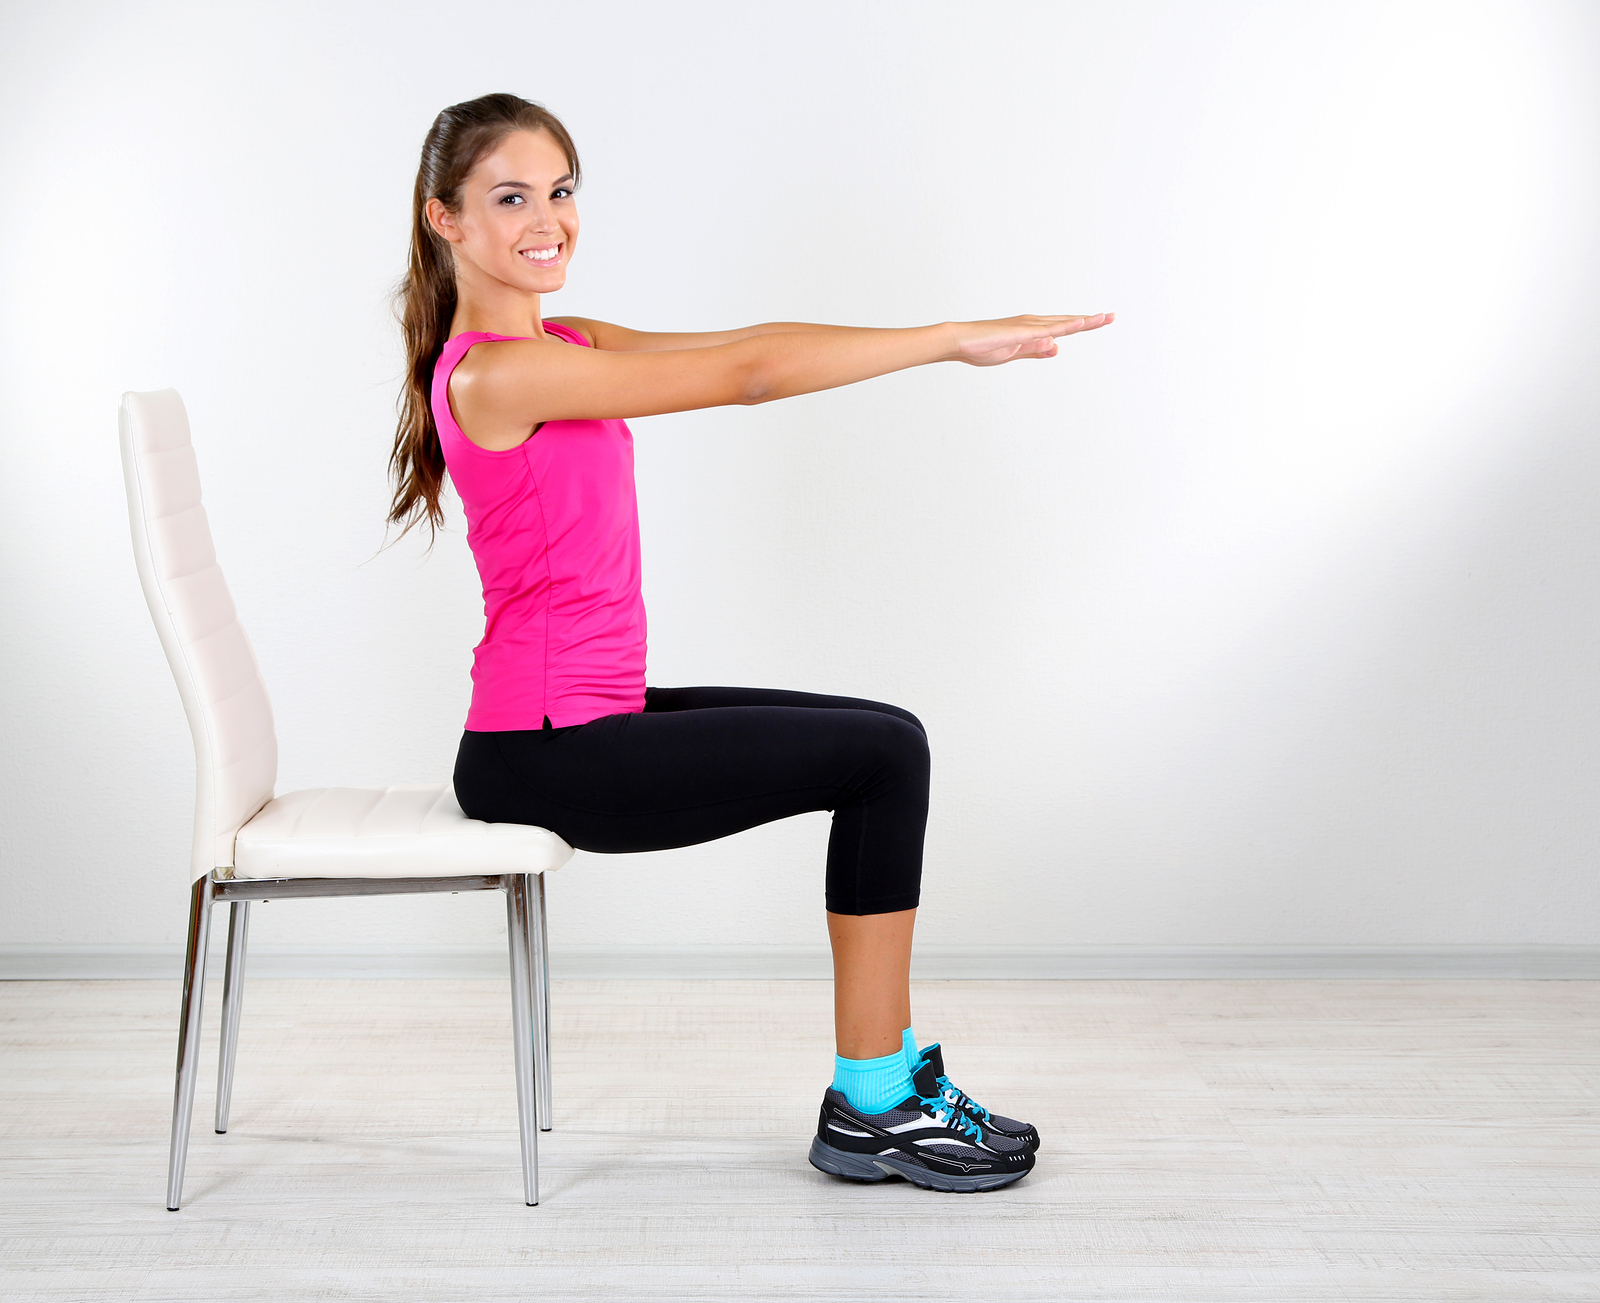 Chair Workouts for Great Legs